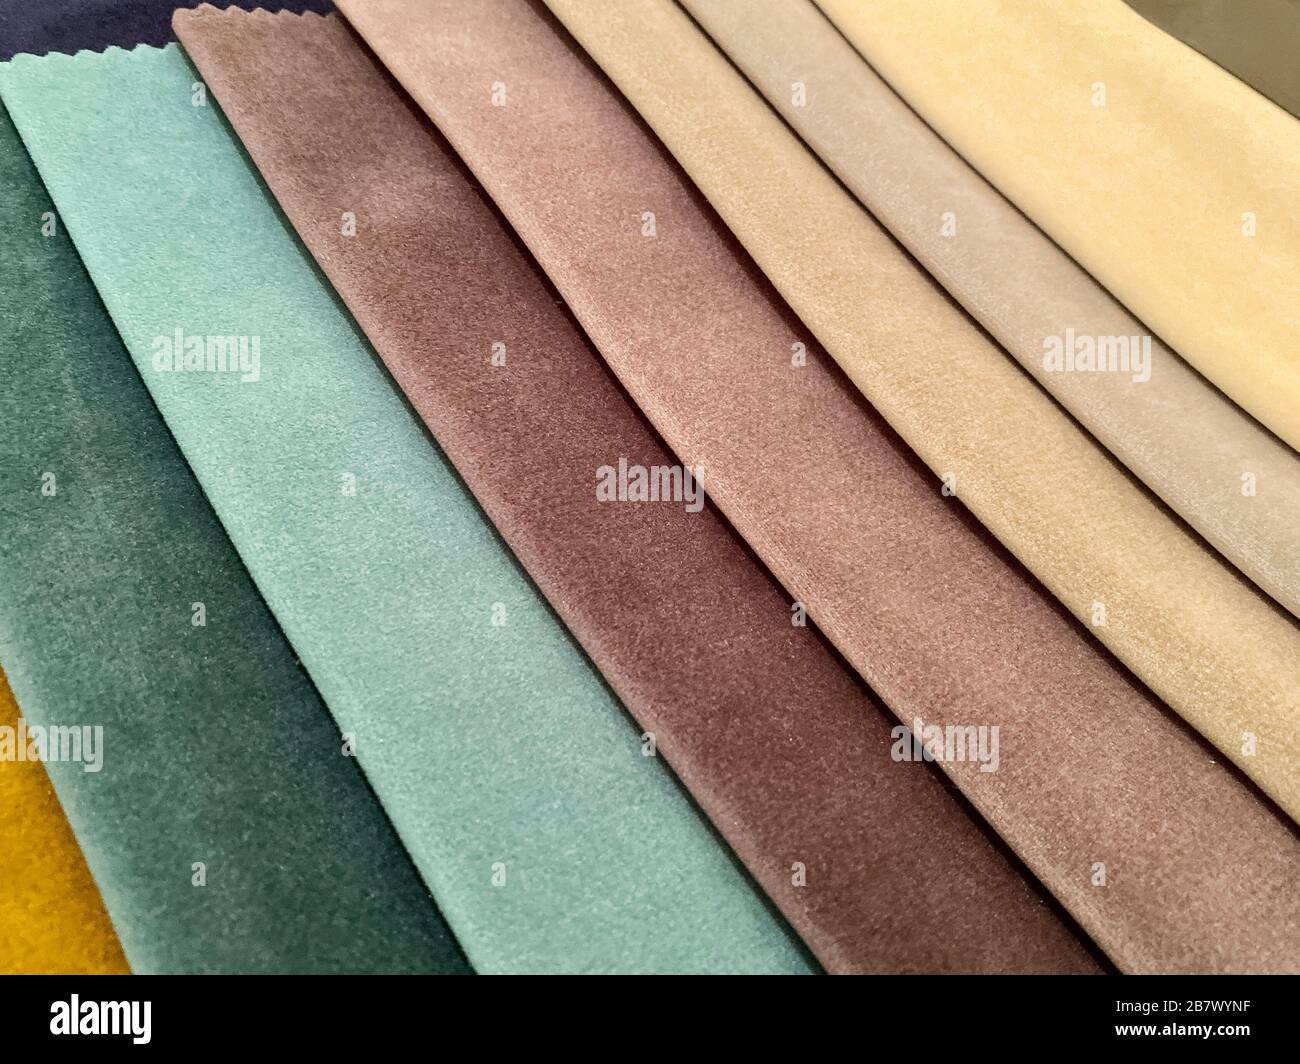 Samples Of Fabric For Decorating The Medel Curtains Dark Shades Of Fabric Background Texture Stock Photo Alamy